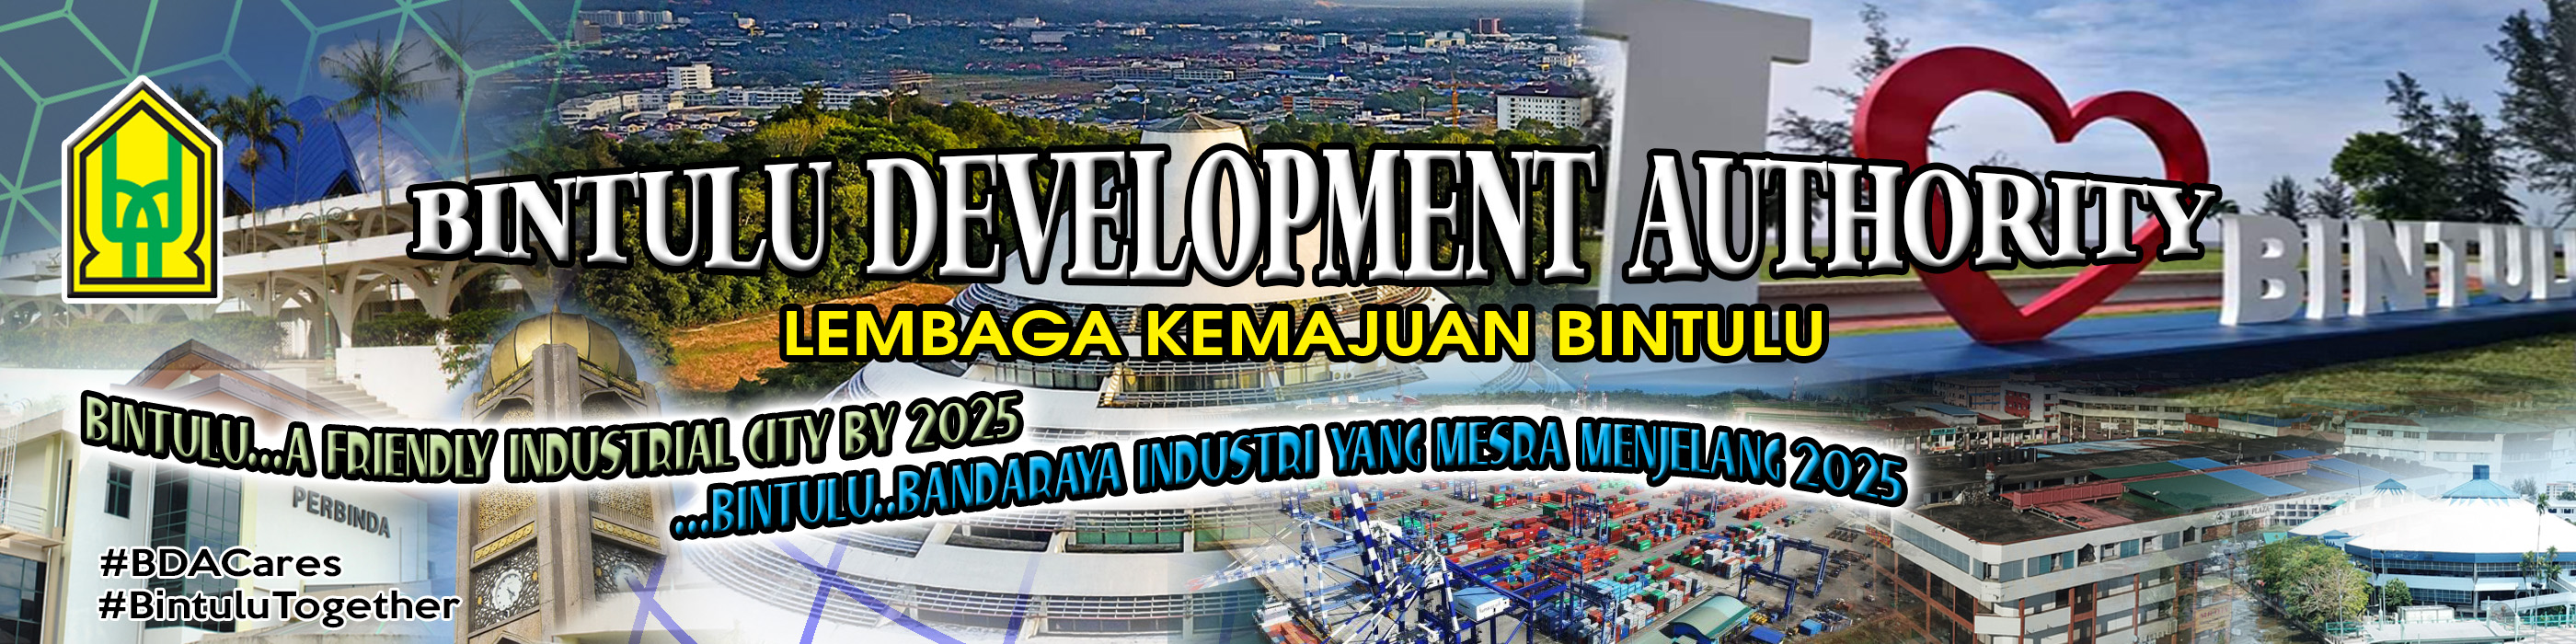 Welcome to Official Website of Bintulu Development Authority